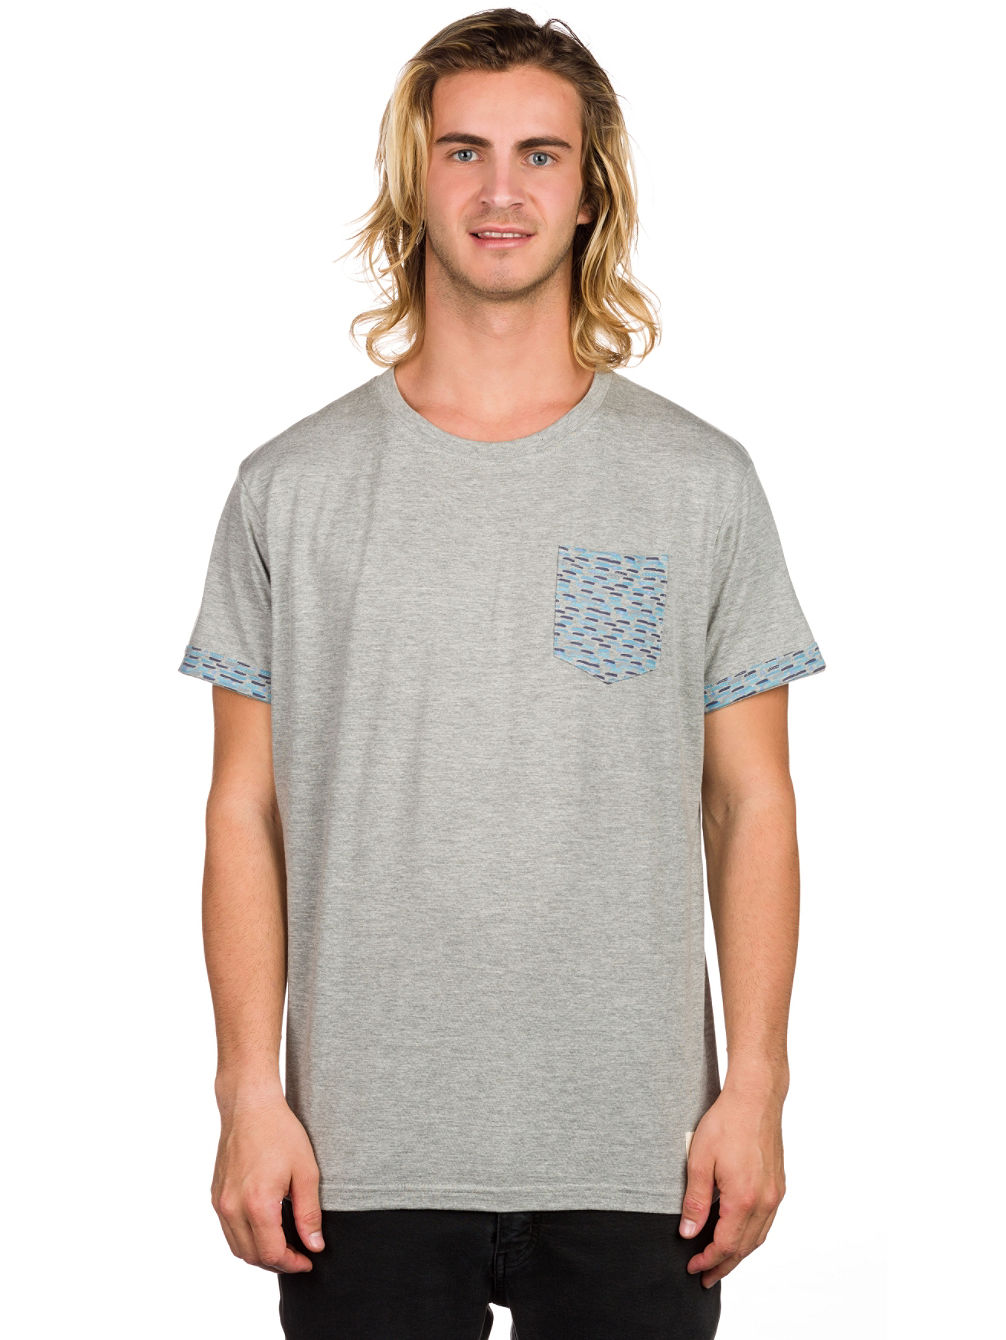 buy bellfield marcel t shirt online at blue. Black Bedroom Furniture Sets. Home Design Ideas